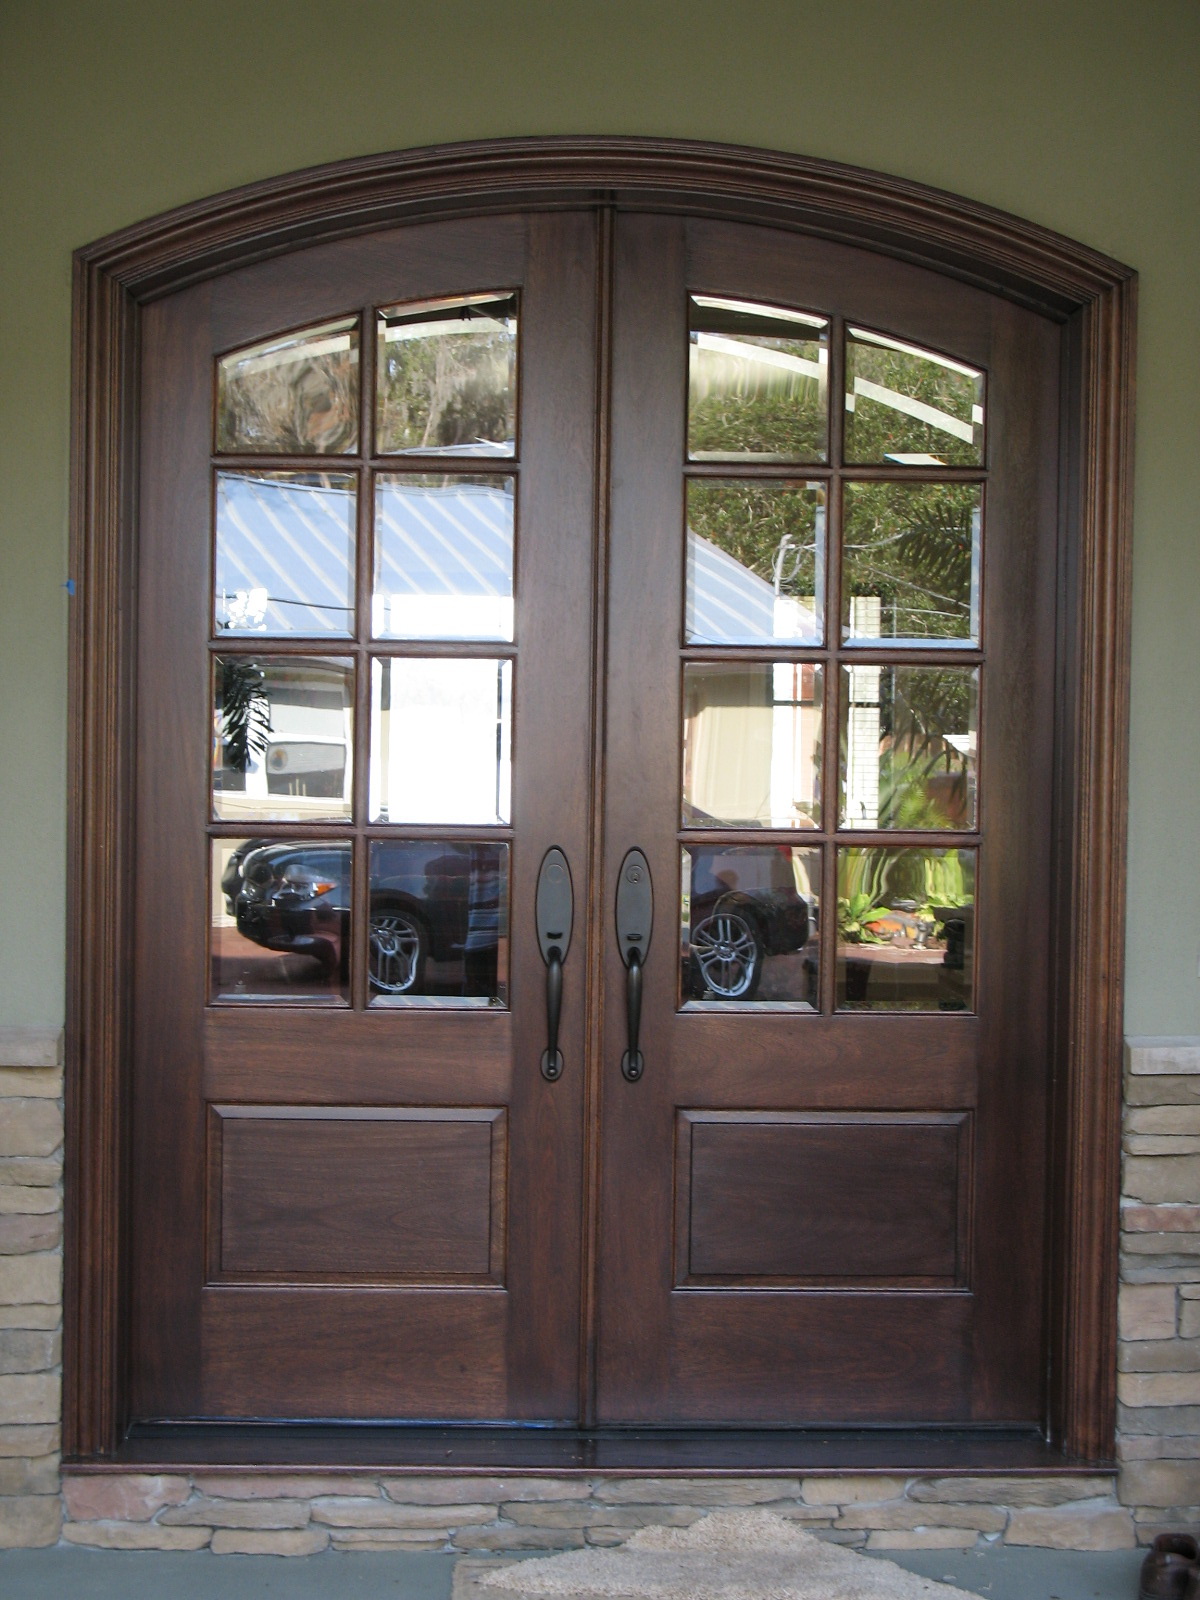 1000 images about front doors on pinterest for Black french doors exterior